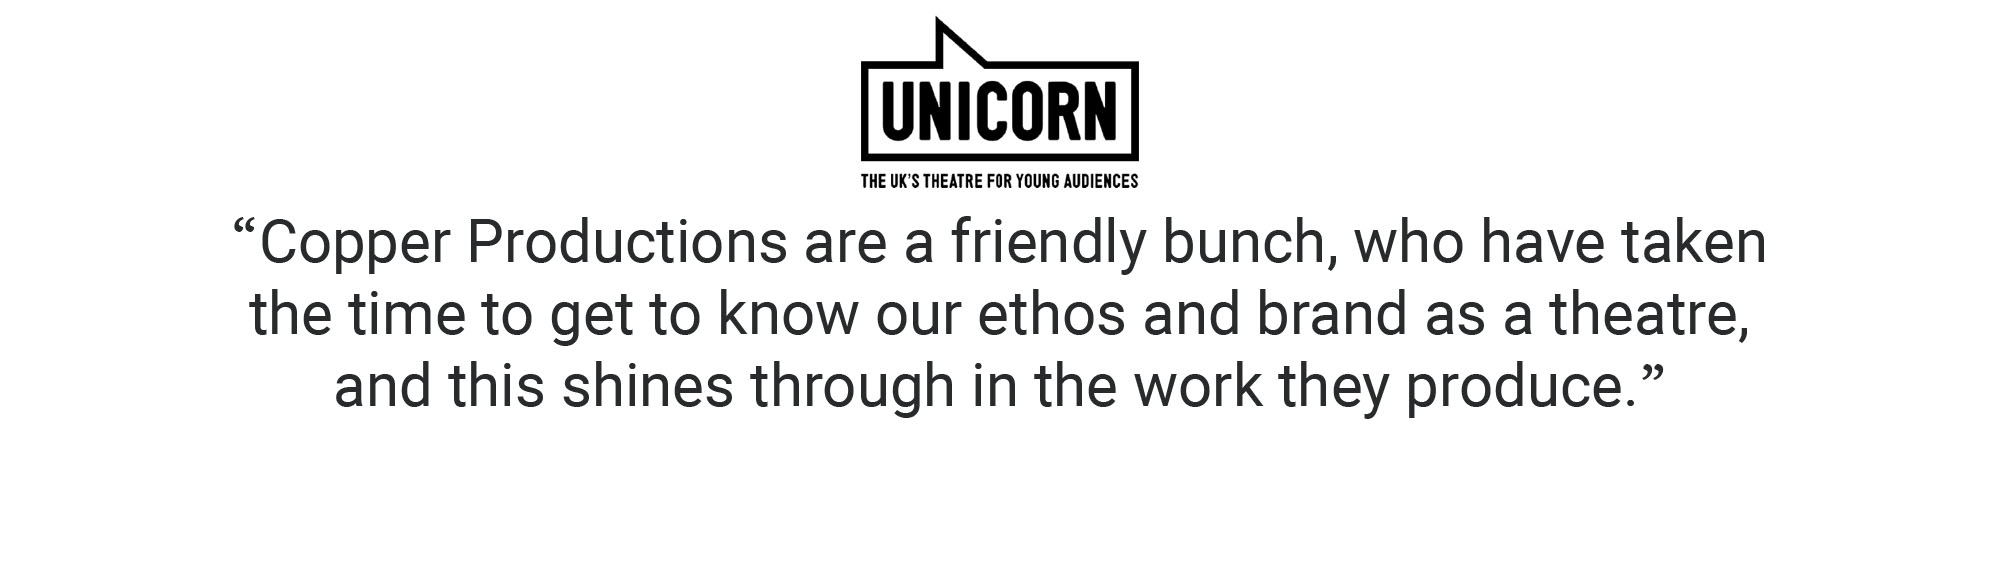 Unicorn Theatre Ethos and Brand Client Testimonial